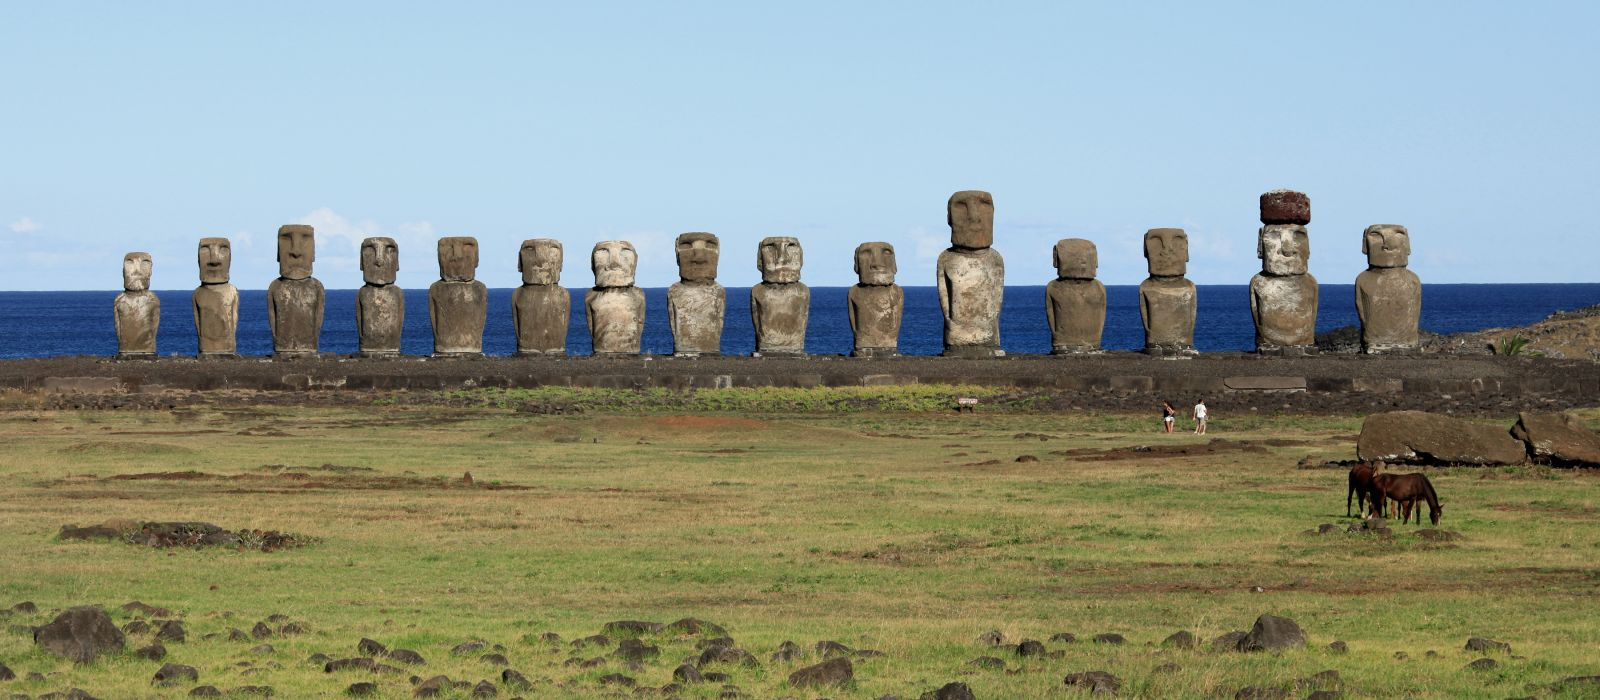 Ancient Moai statues on Easter Island in the Pacific Ocean off the coast of Chile, South America